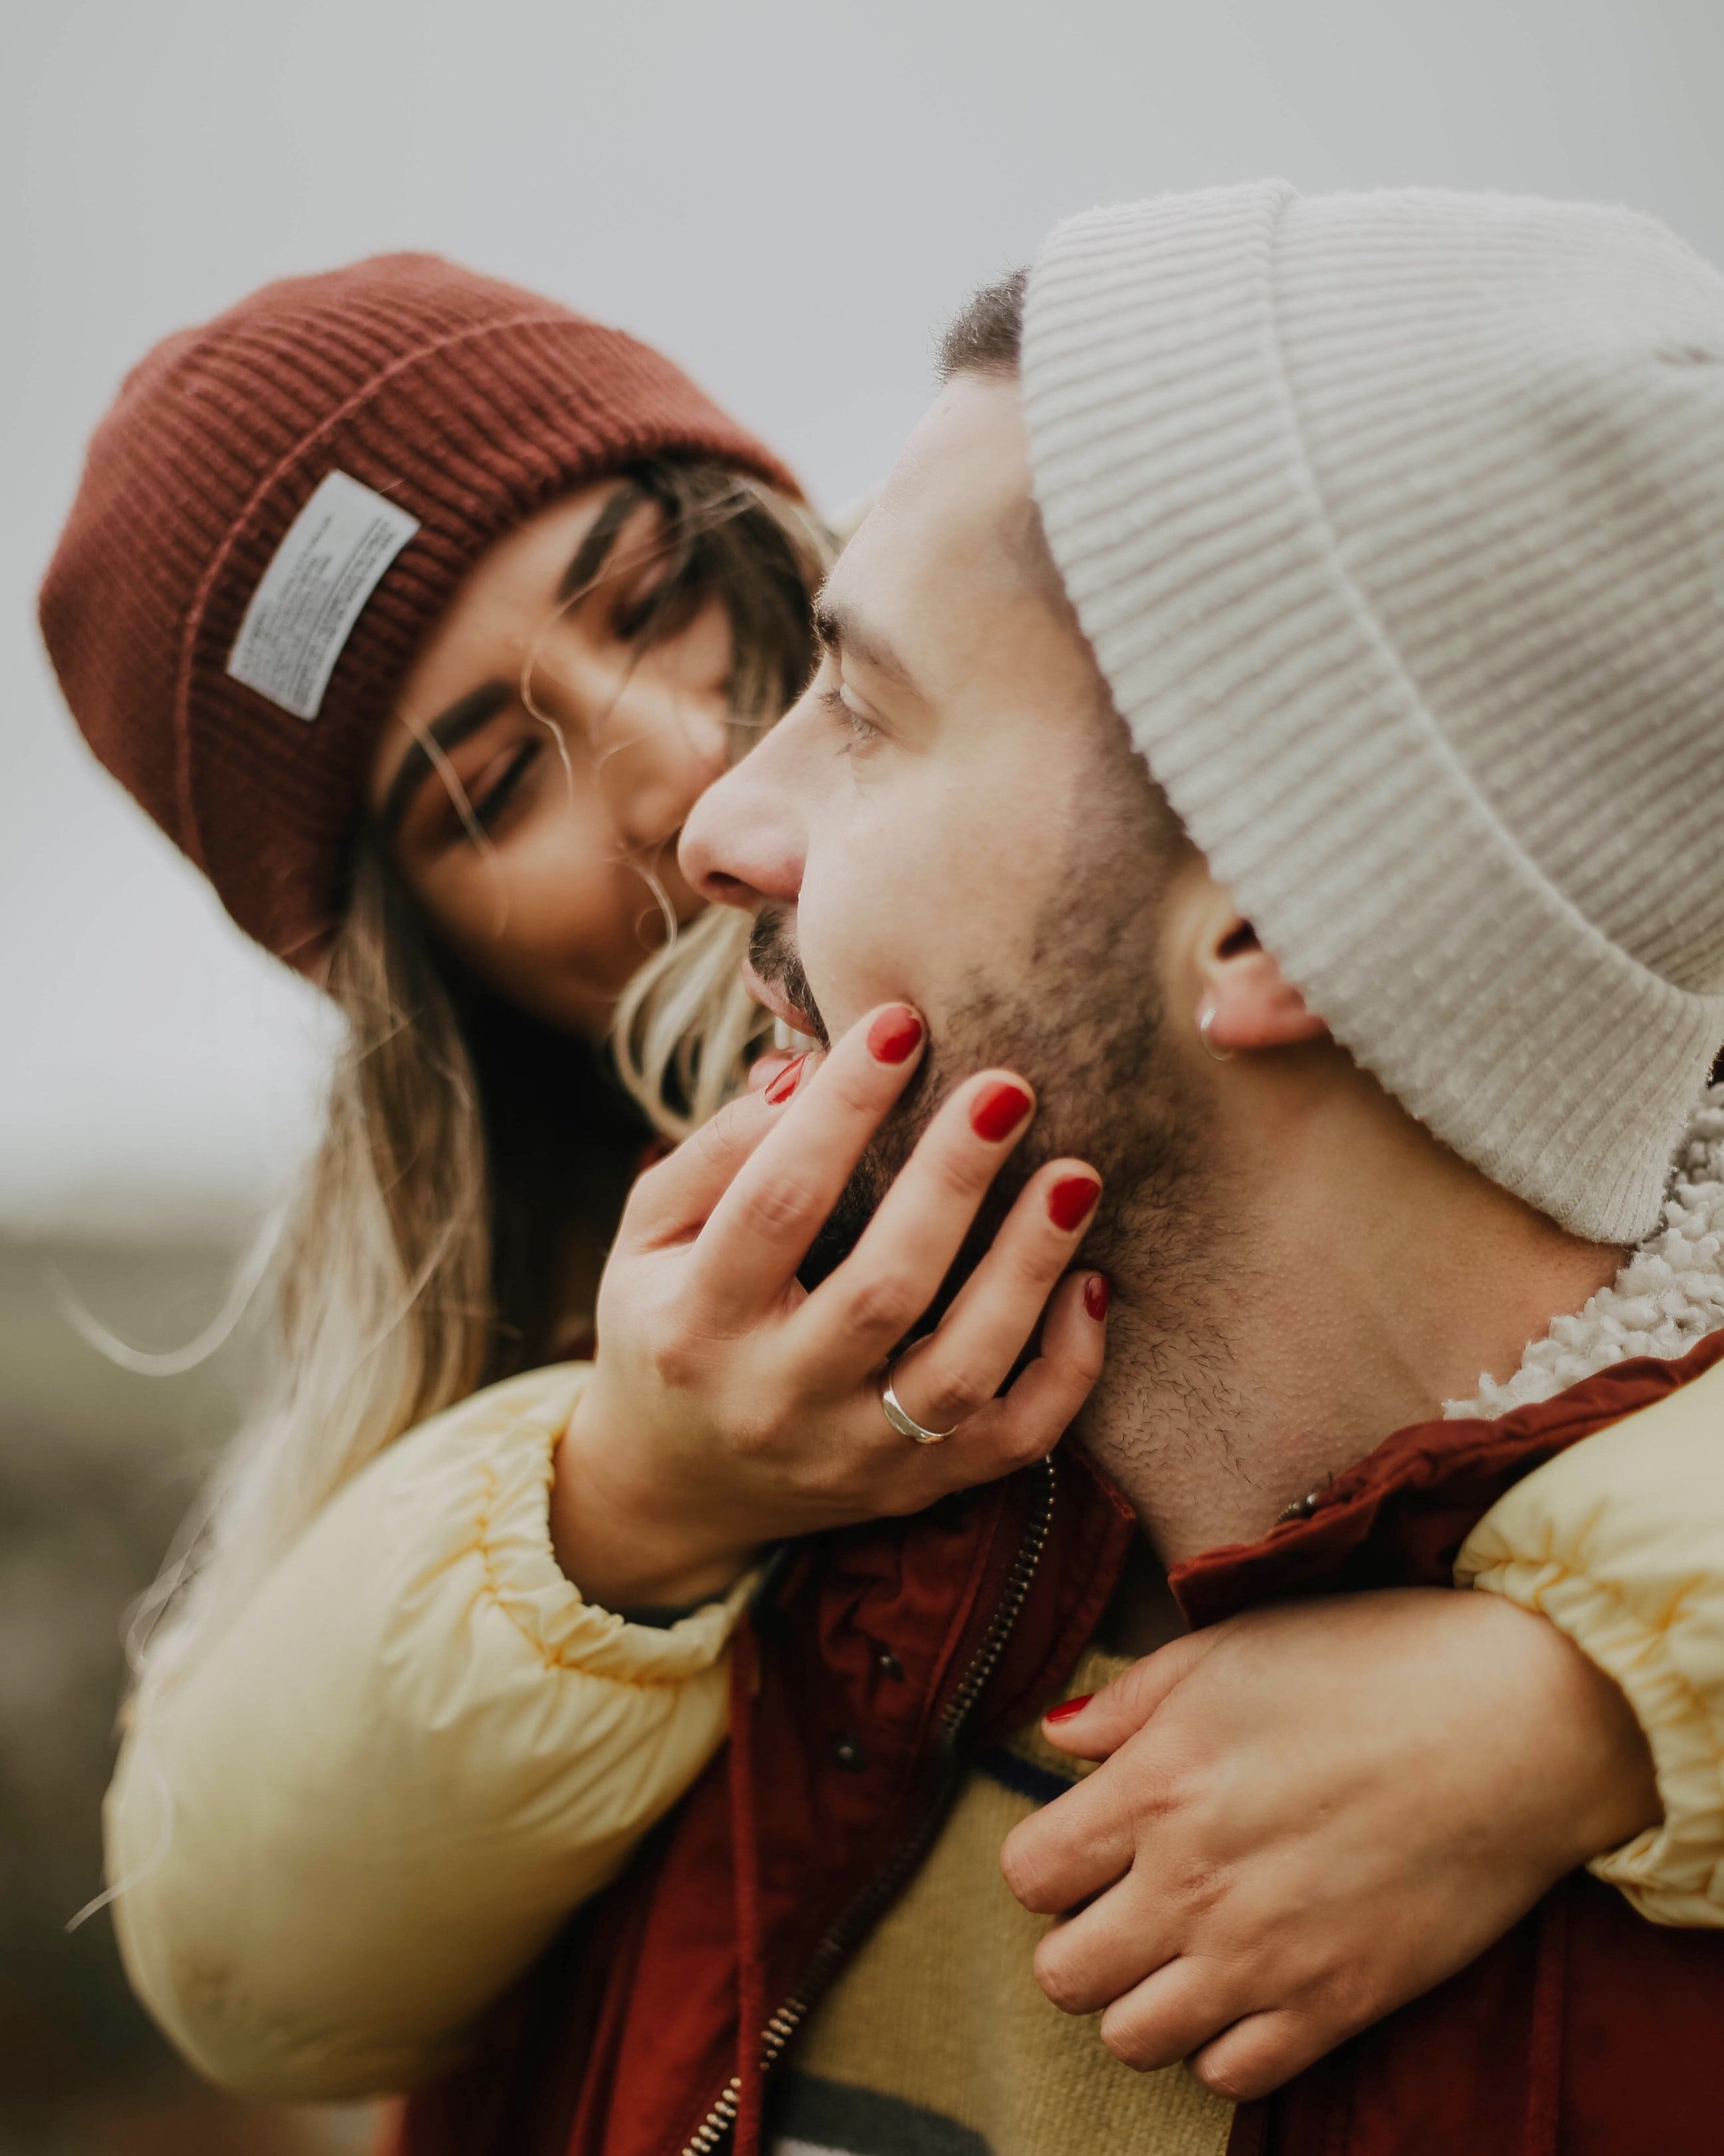 20+ Relationship Pictures - Download Free Images On